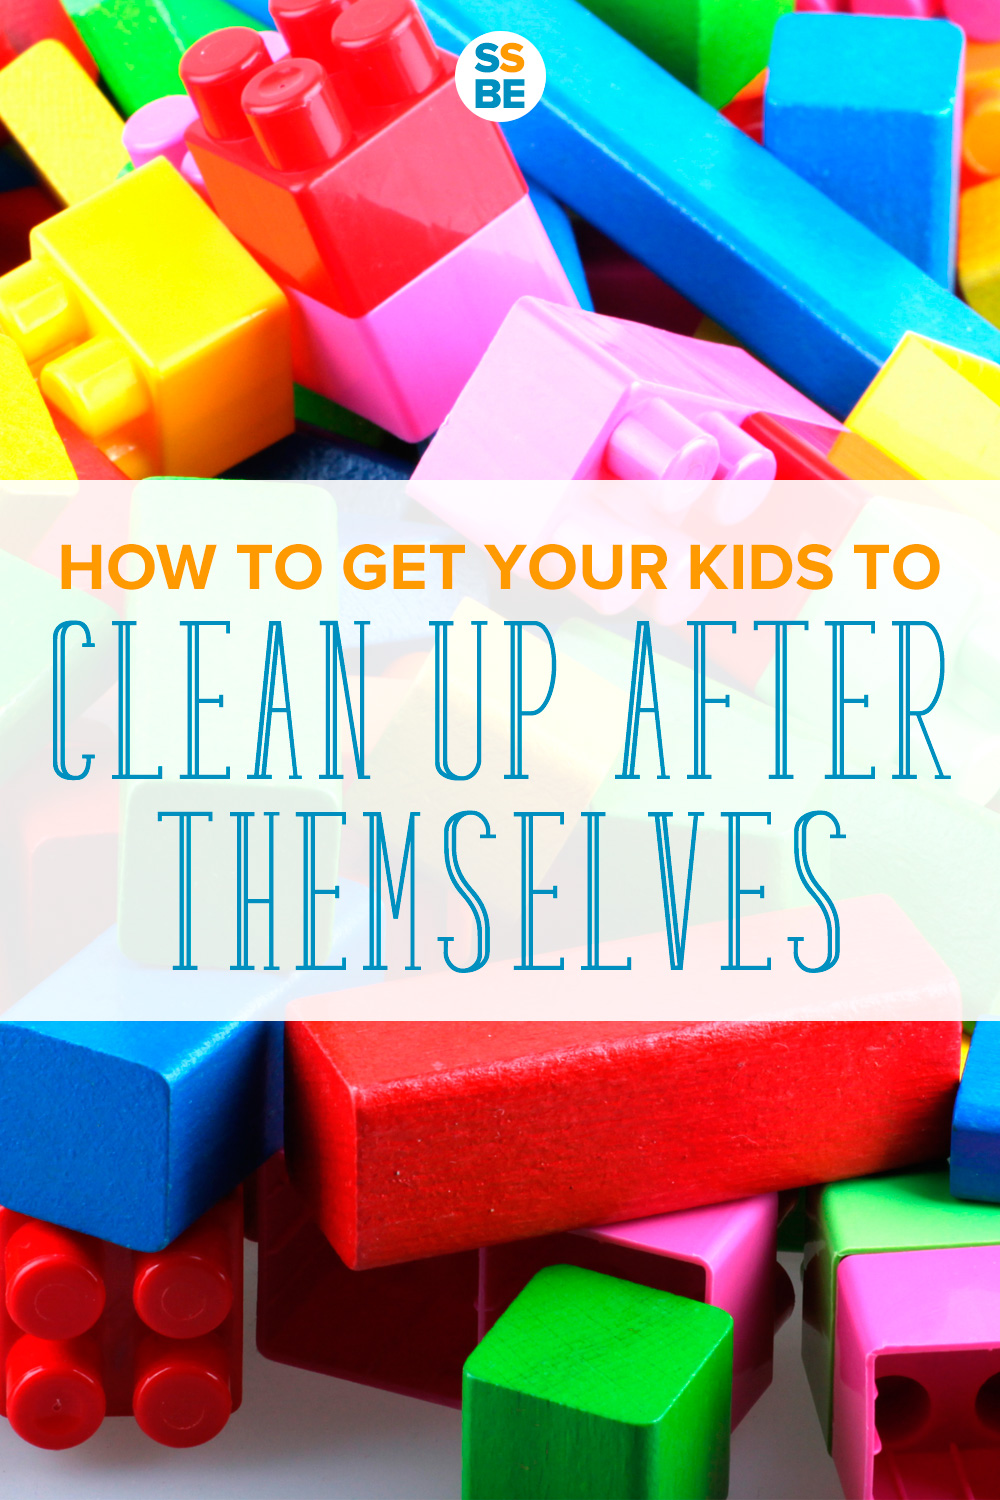 Tired of picking up your kids' toys and items at the end of the day? Here's how to get your child to clean up after themselves without nagging or yelling.